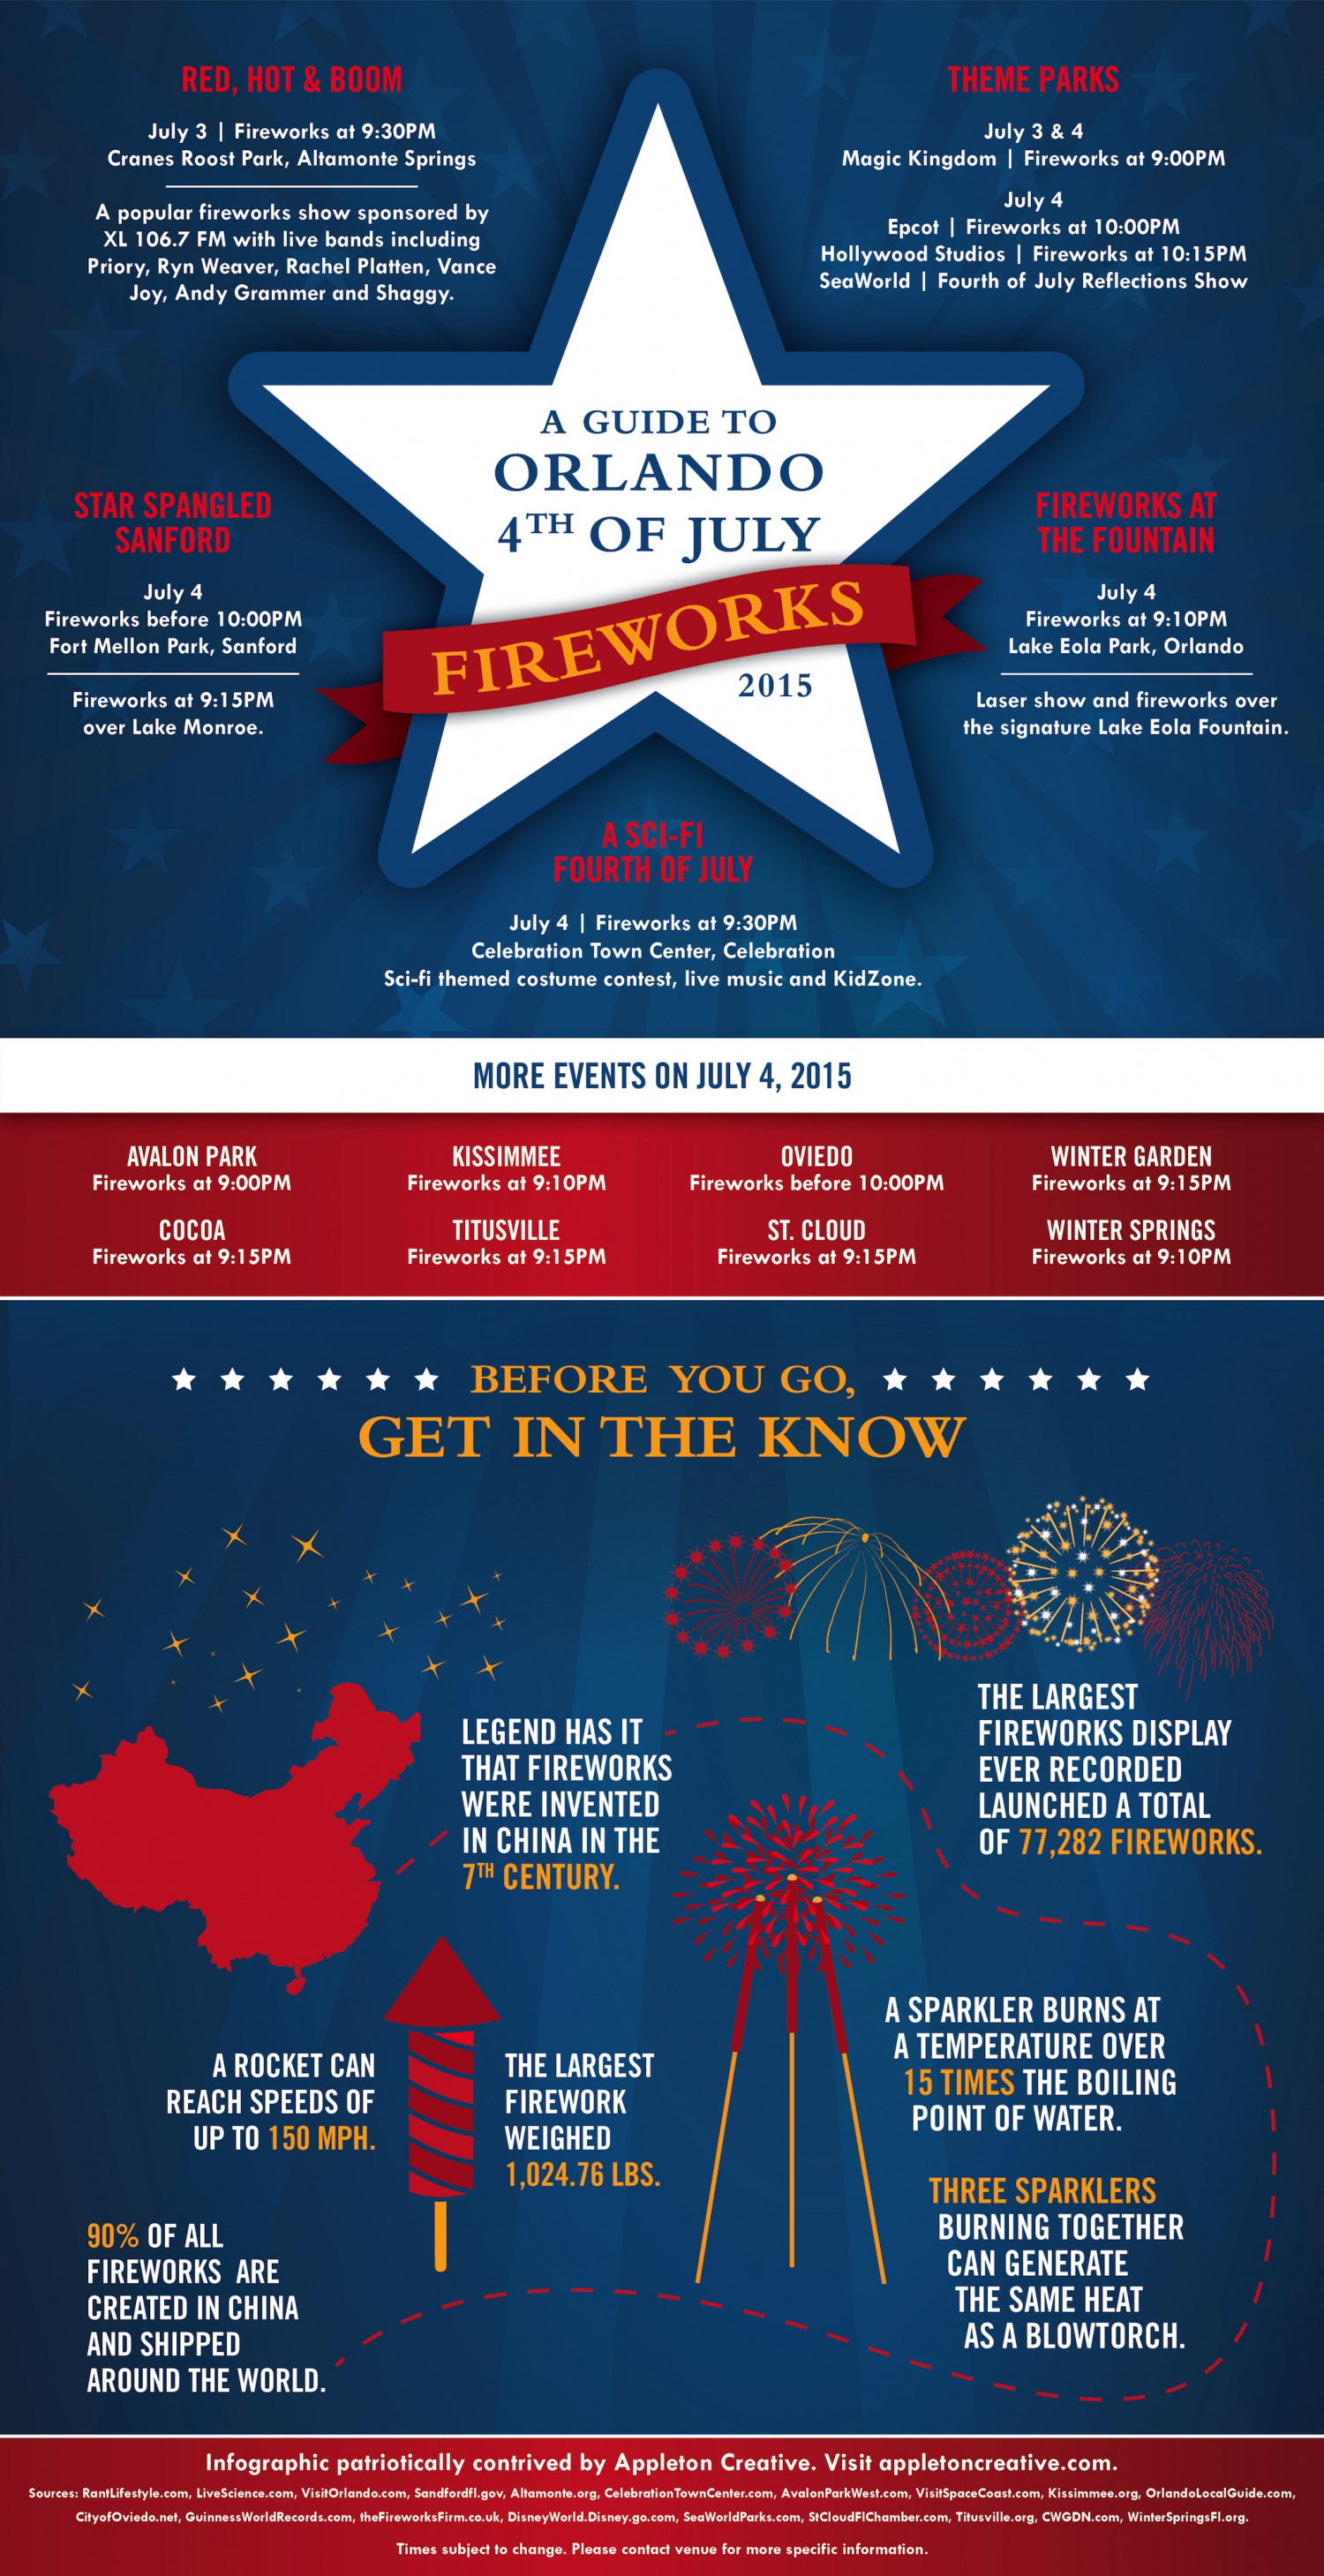 A Guide to Orlando 4th of July Fireworks 2015  Infographic